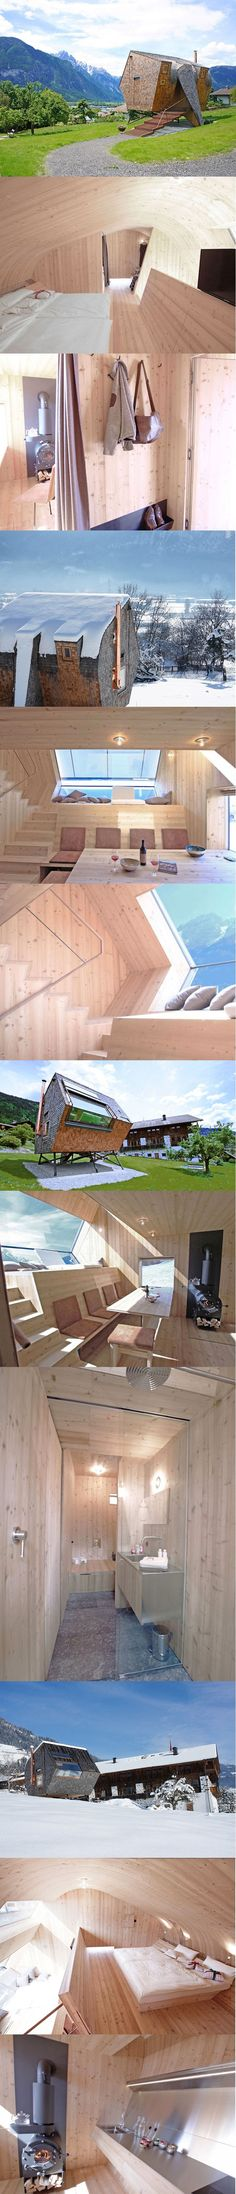 You will fall in love with this little wooden house nestled in the Austrian Alps